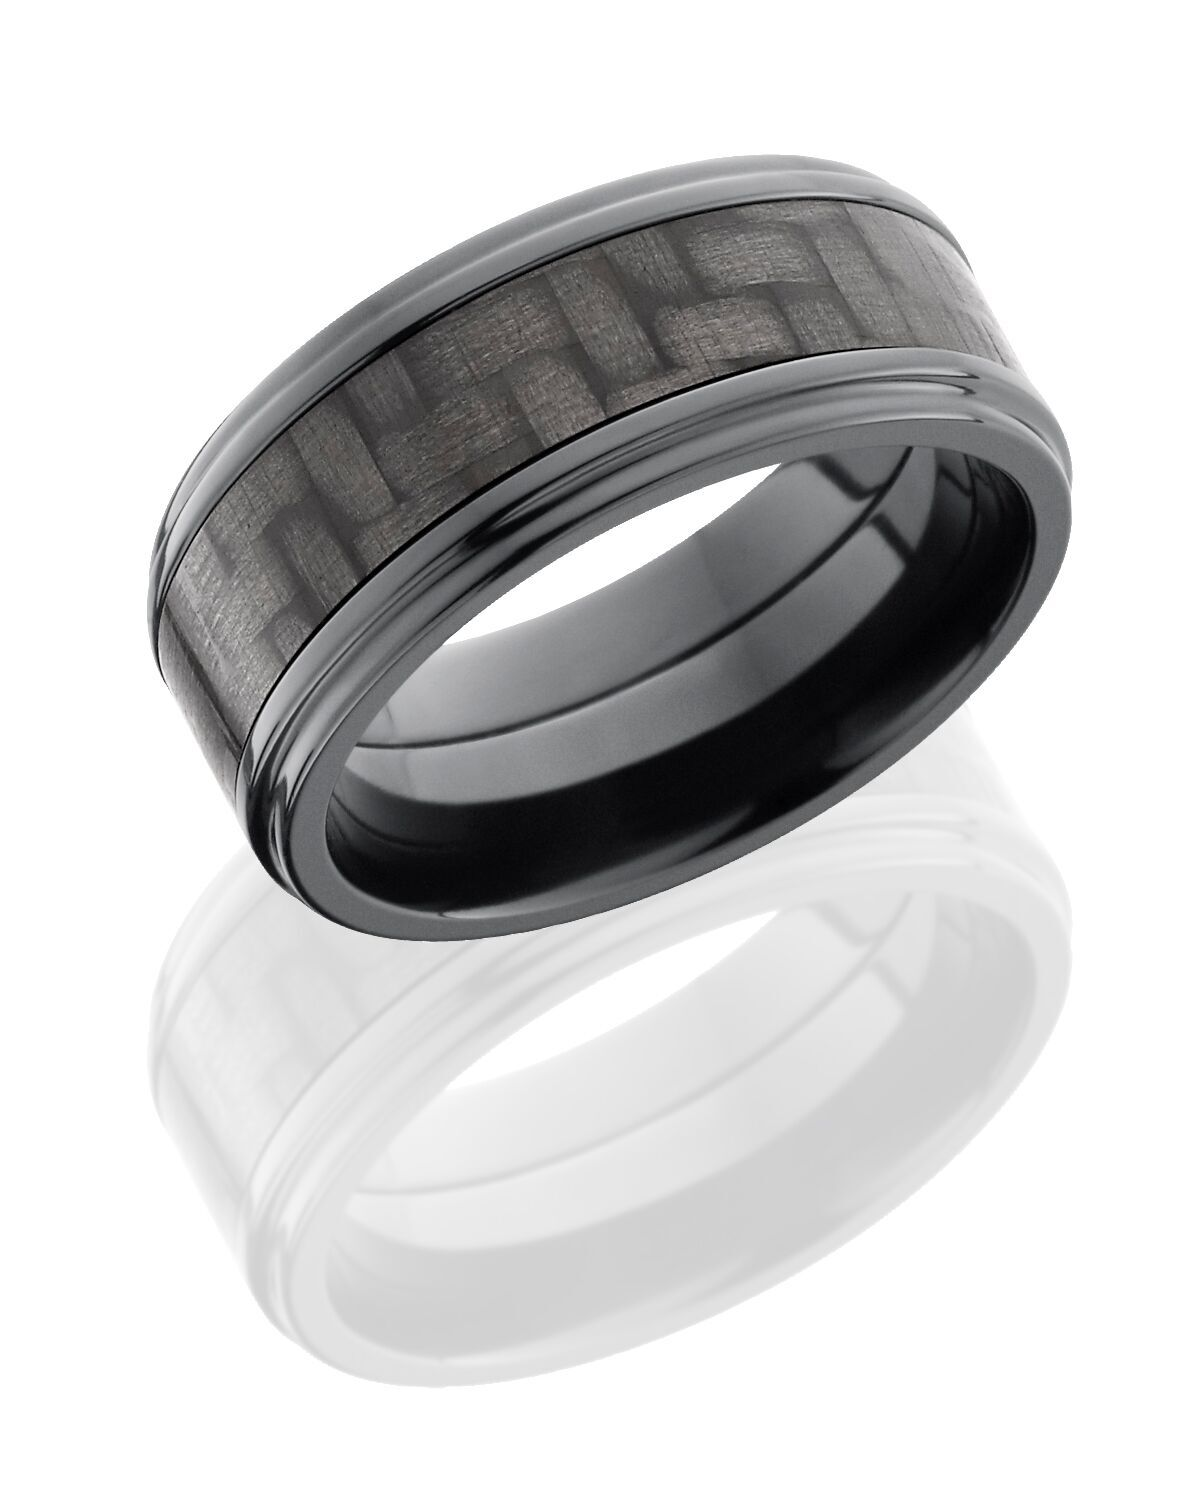 Carbon Fiber Diamontrigue Jewelry: Zirconium & Carbon Fiber - Diamontrigue Jewelry